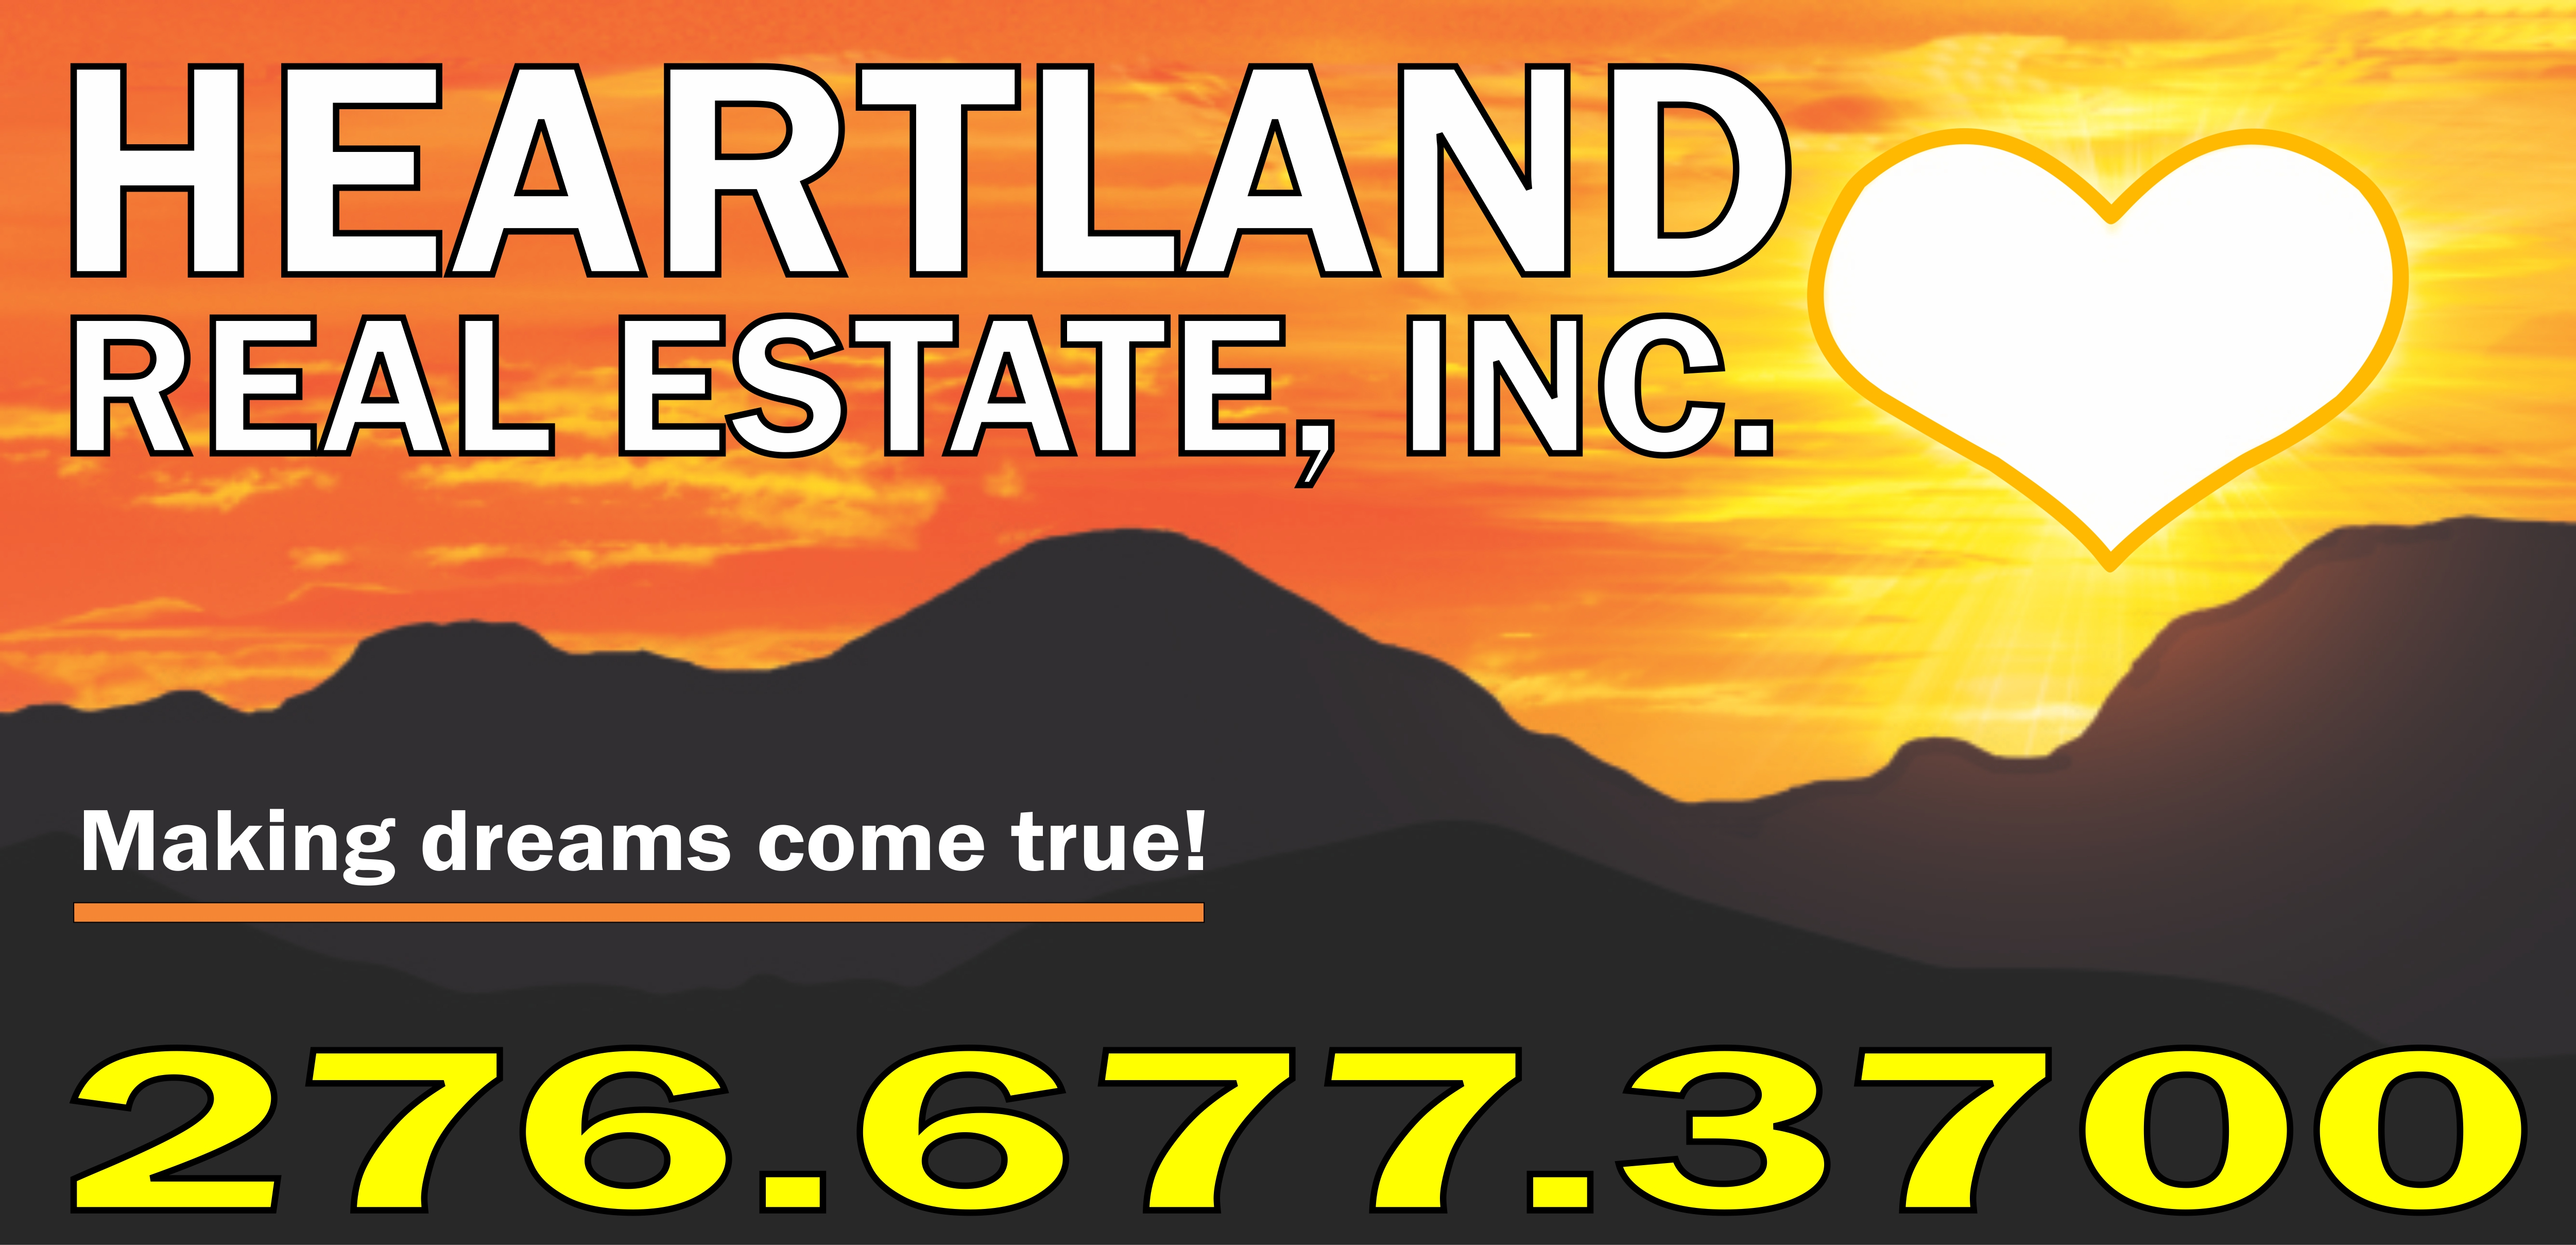 Heartland Real Estate, Inc. - Sugar Grove, VA 24375 - Smyth County